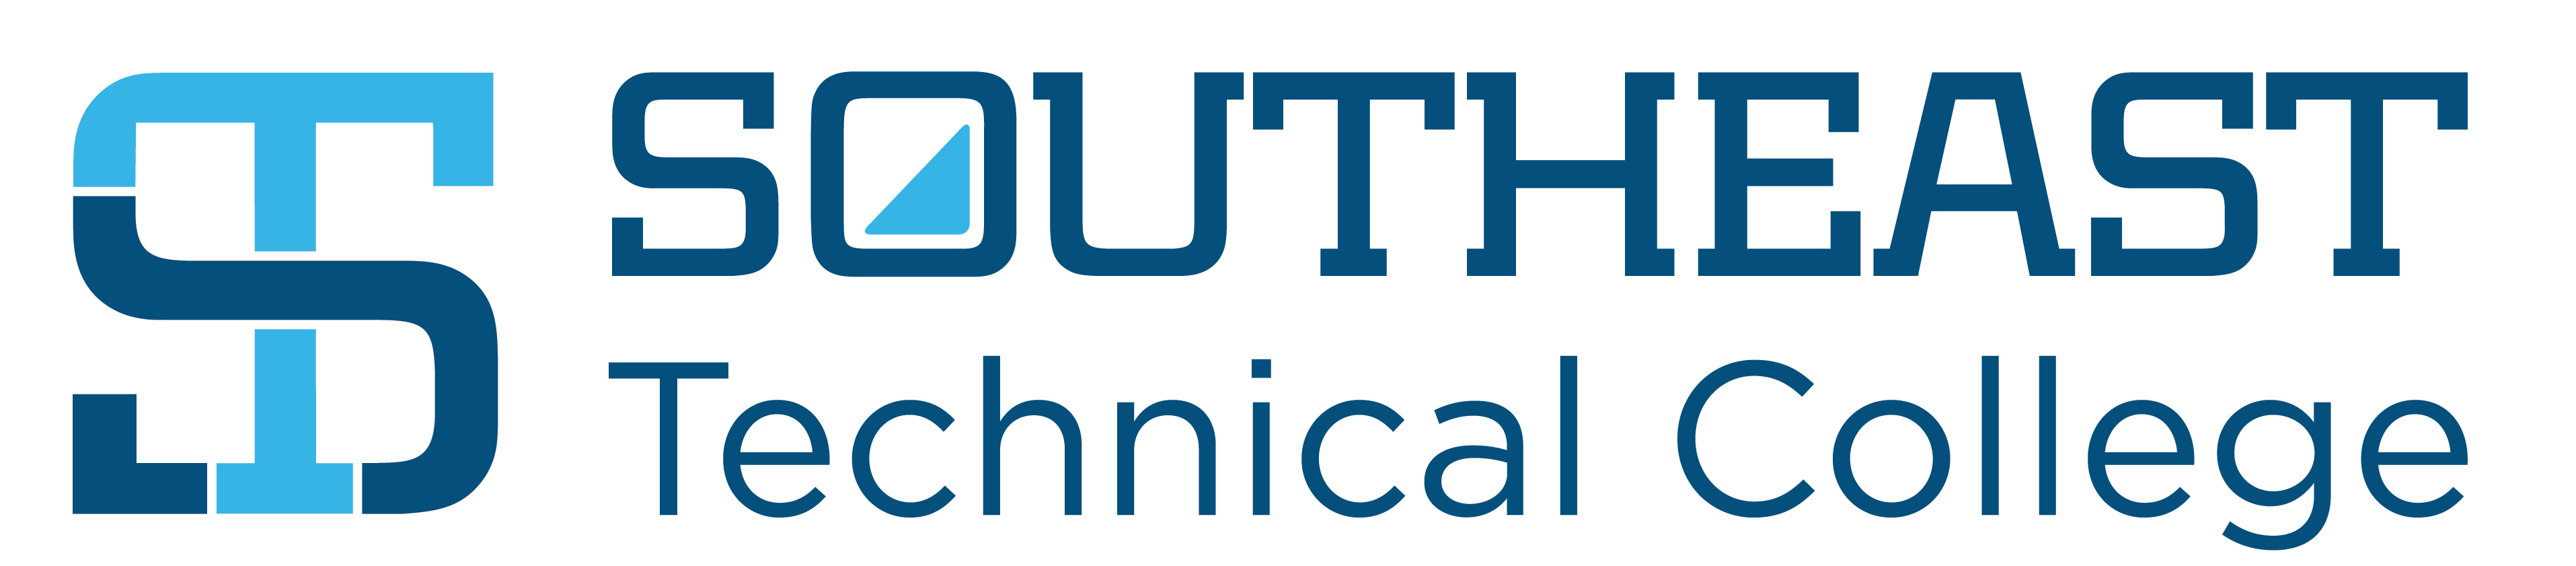 Southeast Technical College logo and monogram